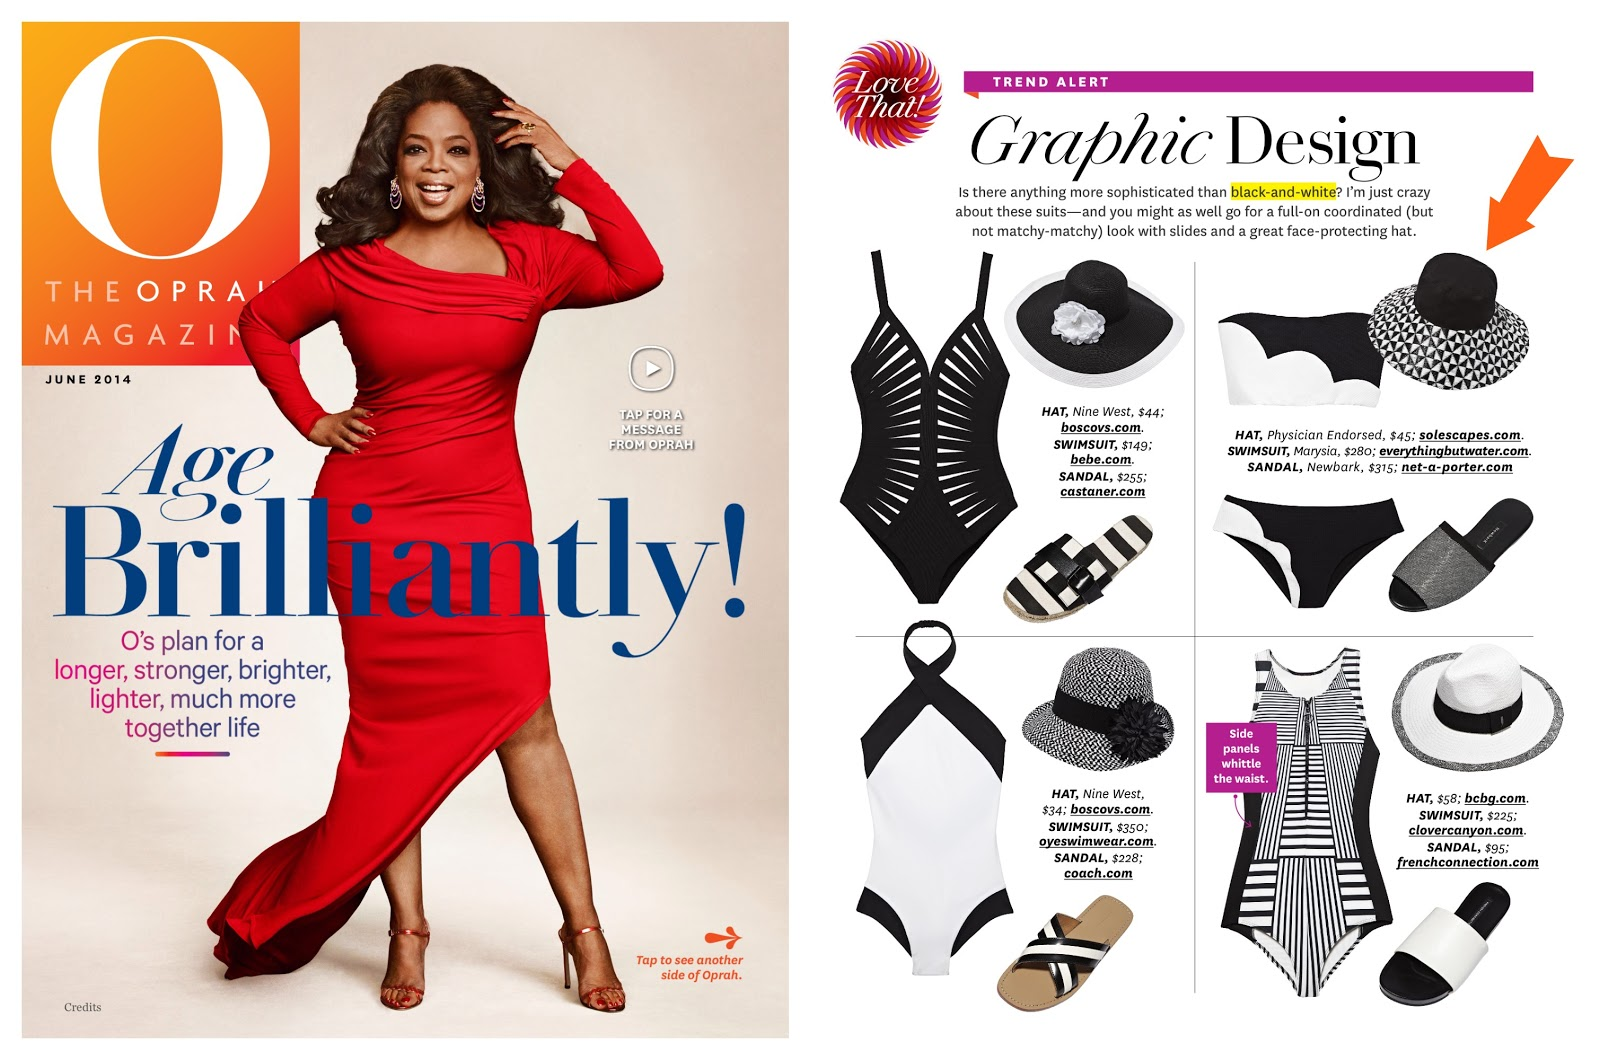 http://www.solescapes.com/Sundara-Physican-Endorsed-Sun-Hat-As-Seen-in-Oprah-Magazine-s/2211.htm